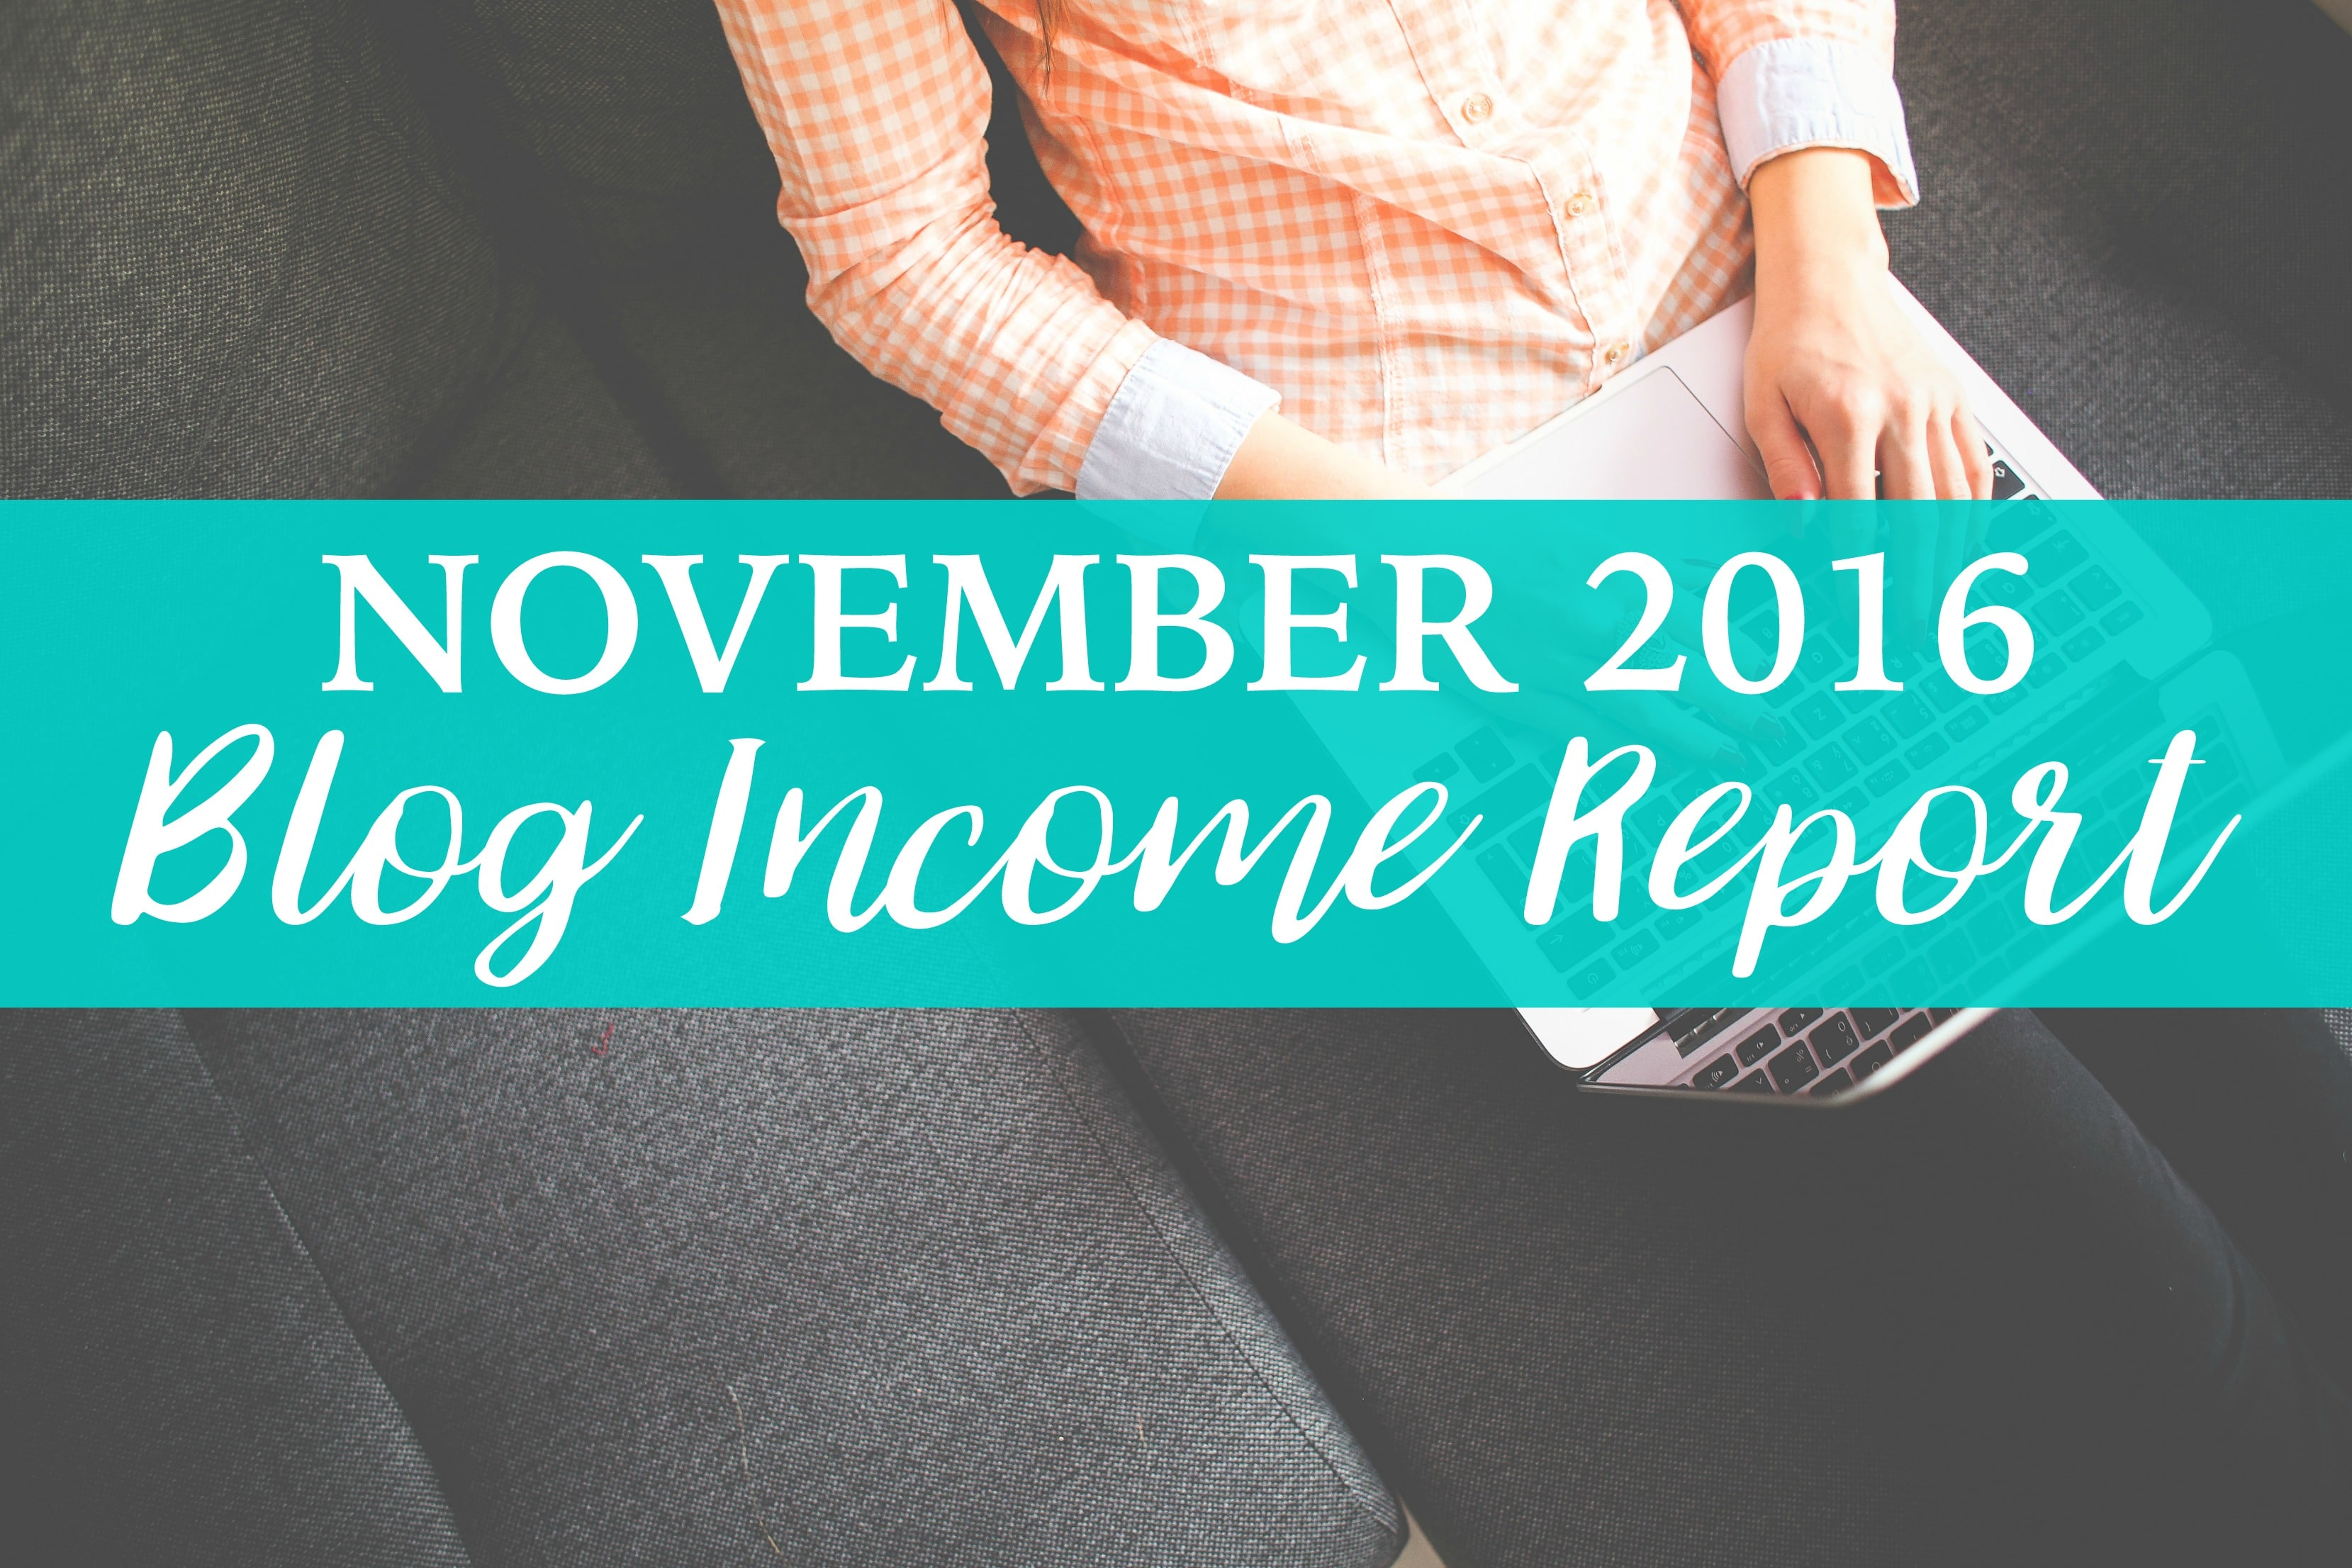 Blog Income Report November 2016